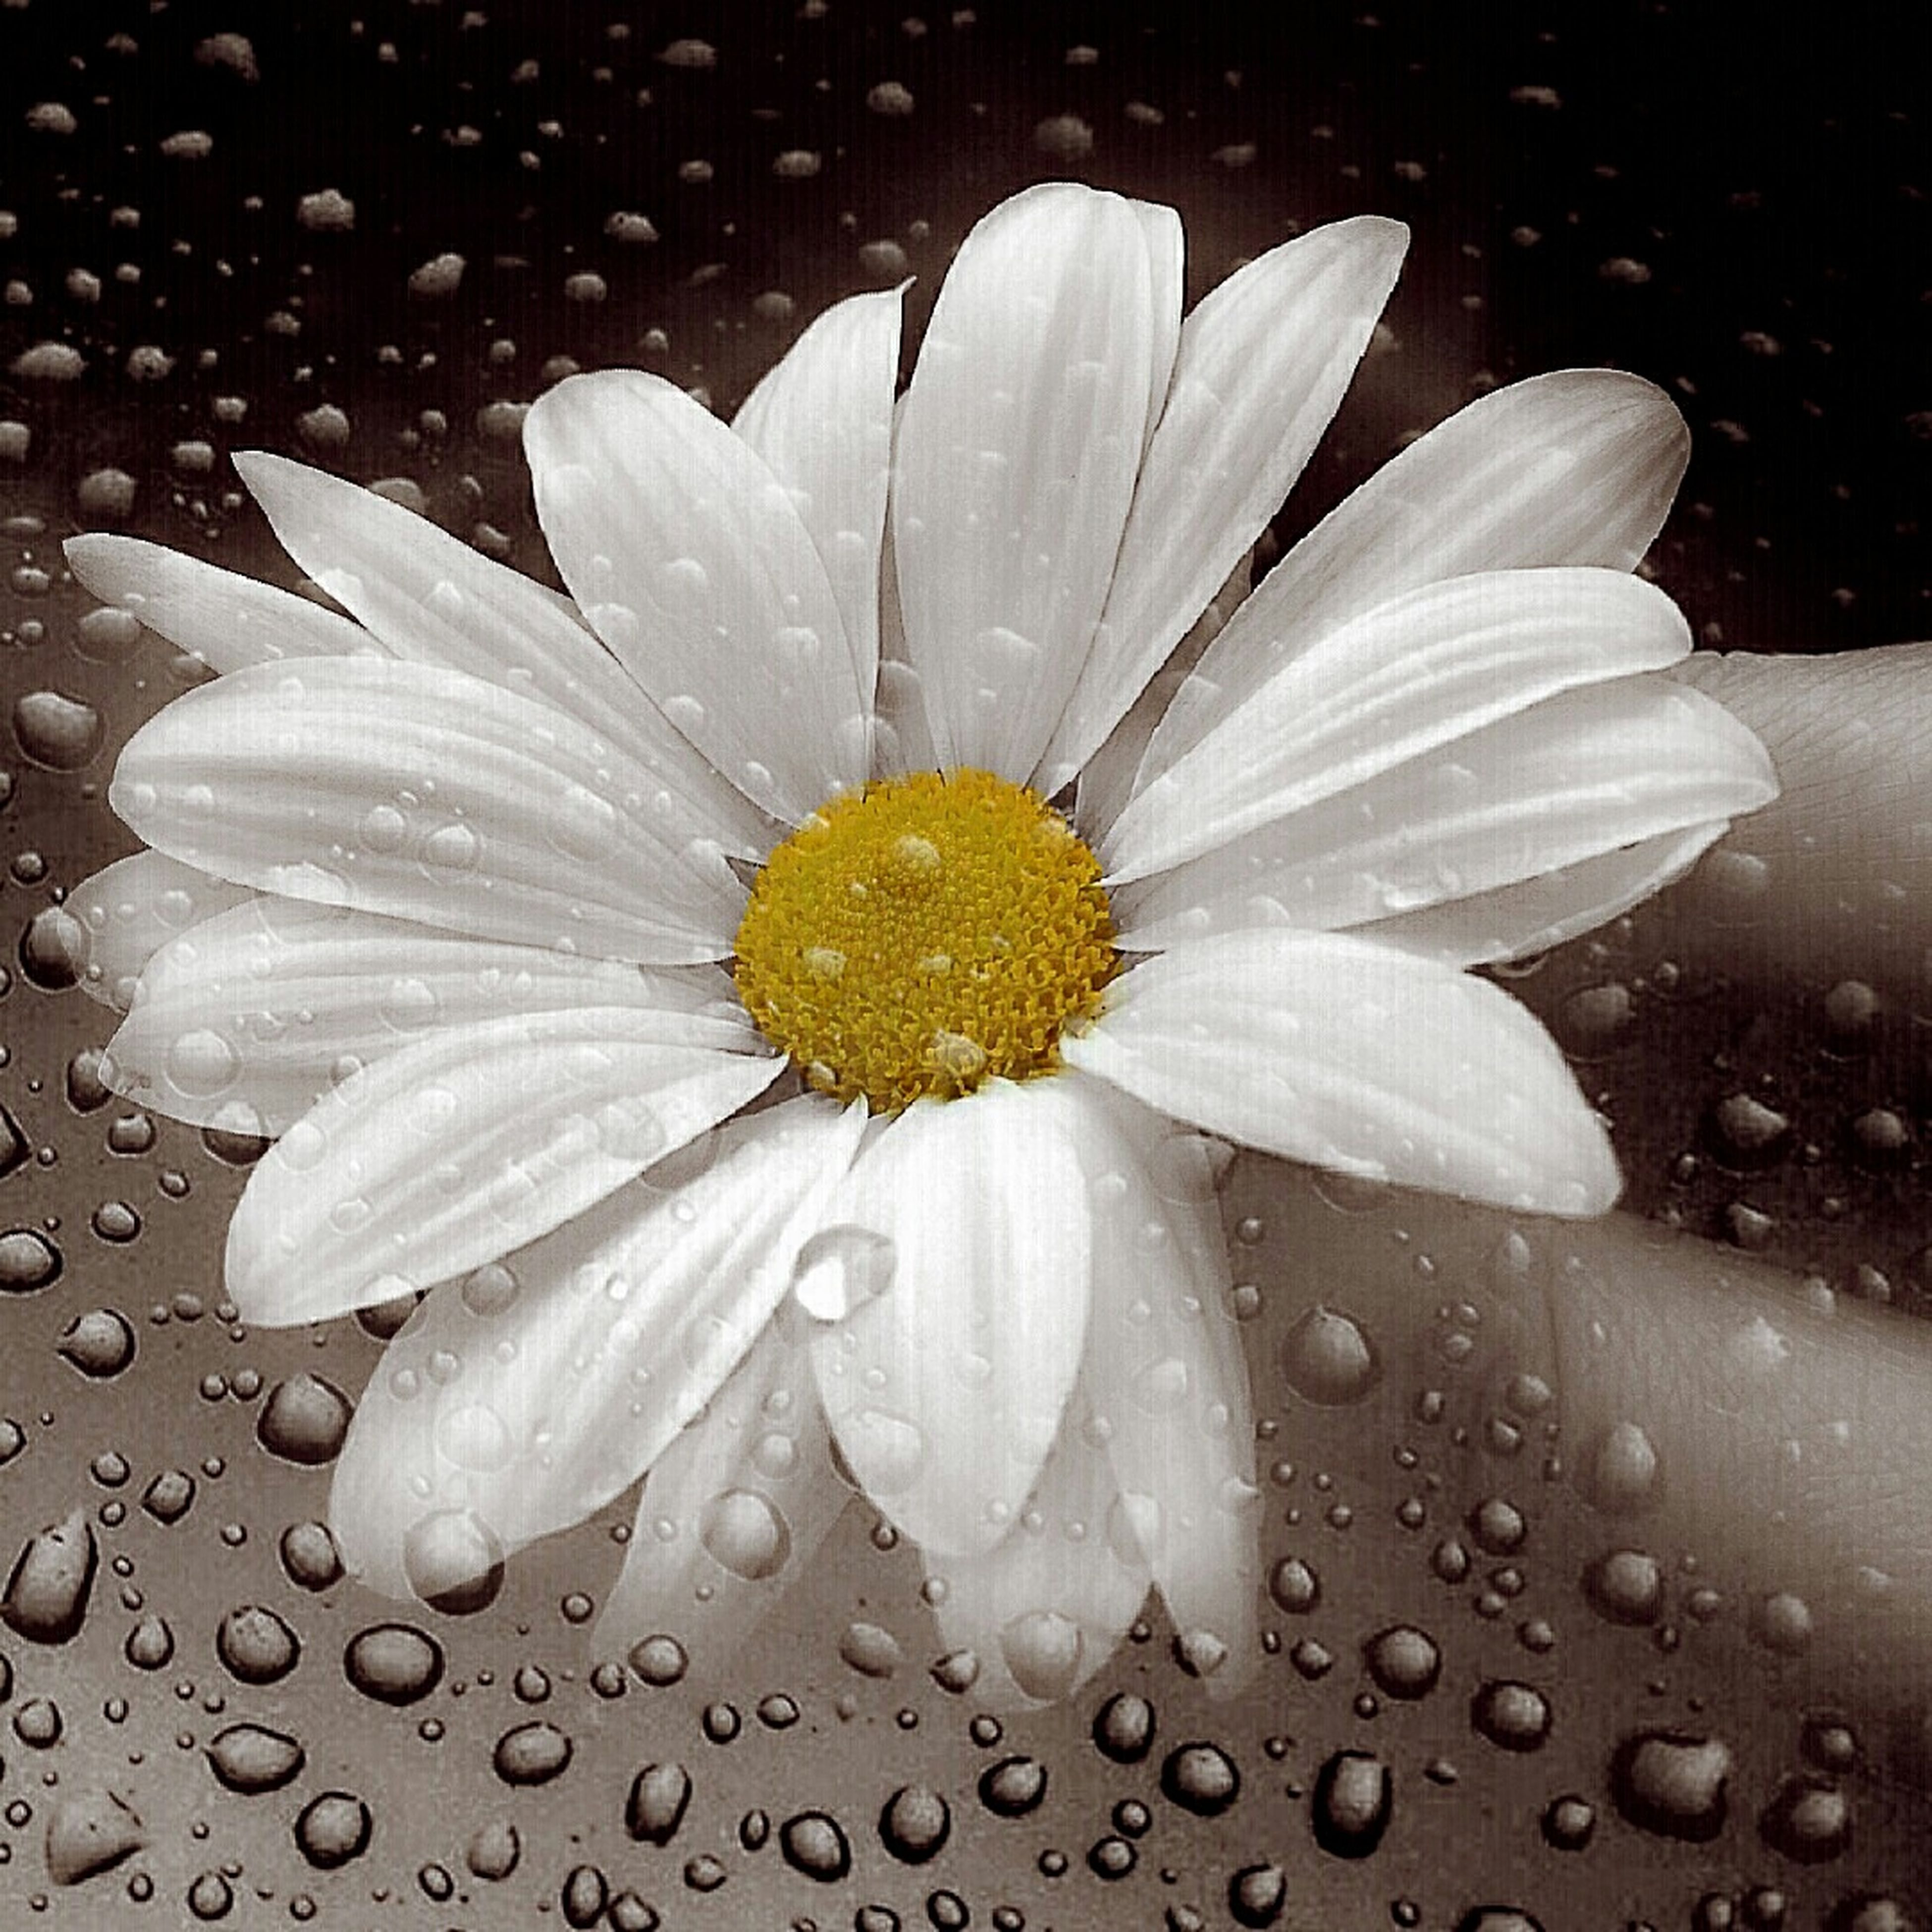 flower, petal, freshness, flower head, fragility, single flower, water, white color, pollen, beauty in nature, close-up, drop, nature, growth, blooming, wet, daisy, high angle view, plant, in bloom